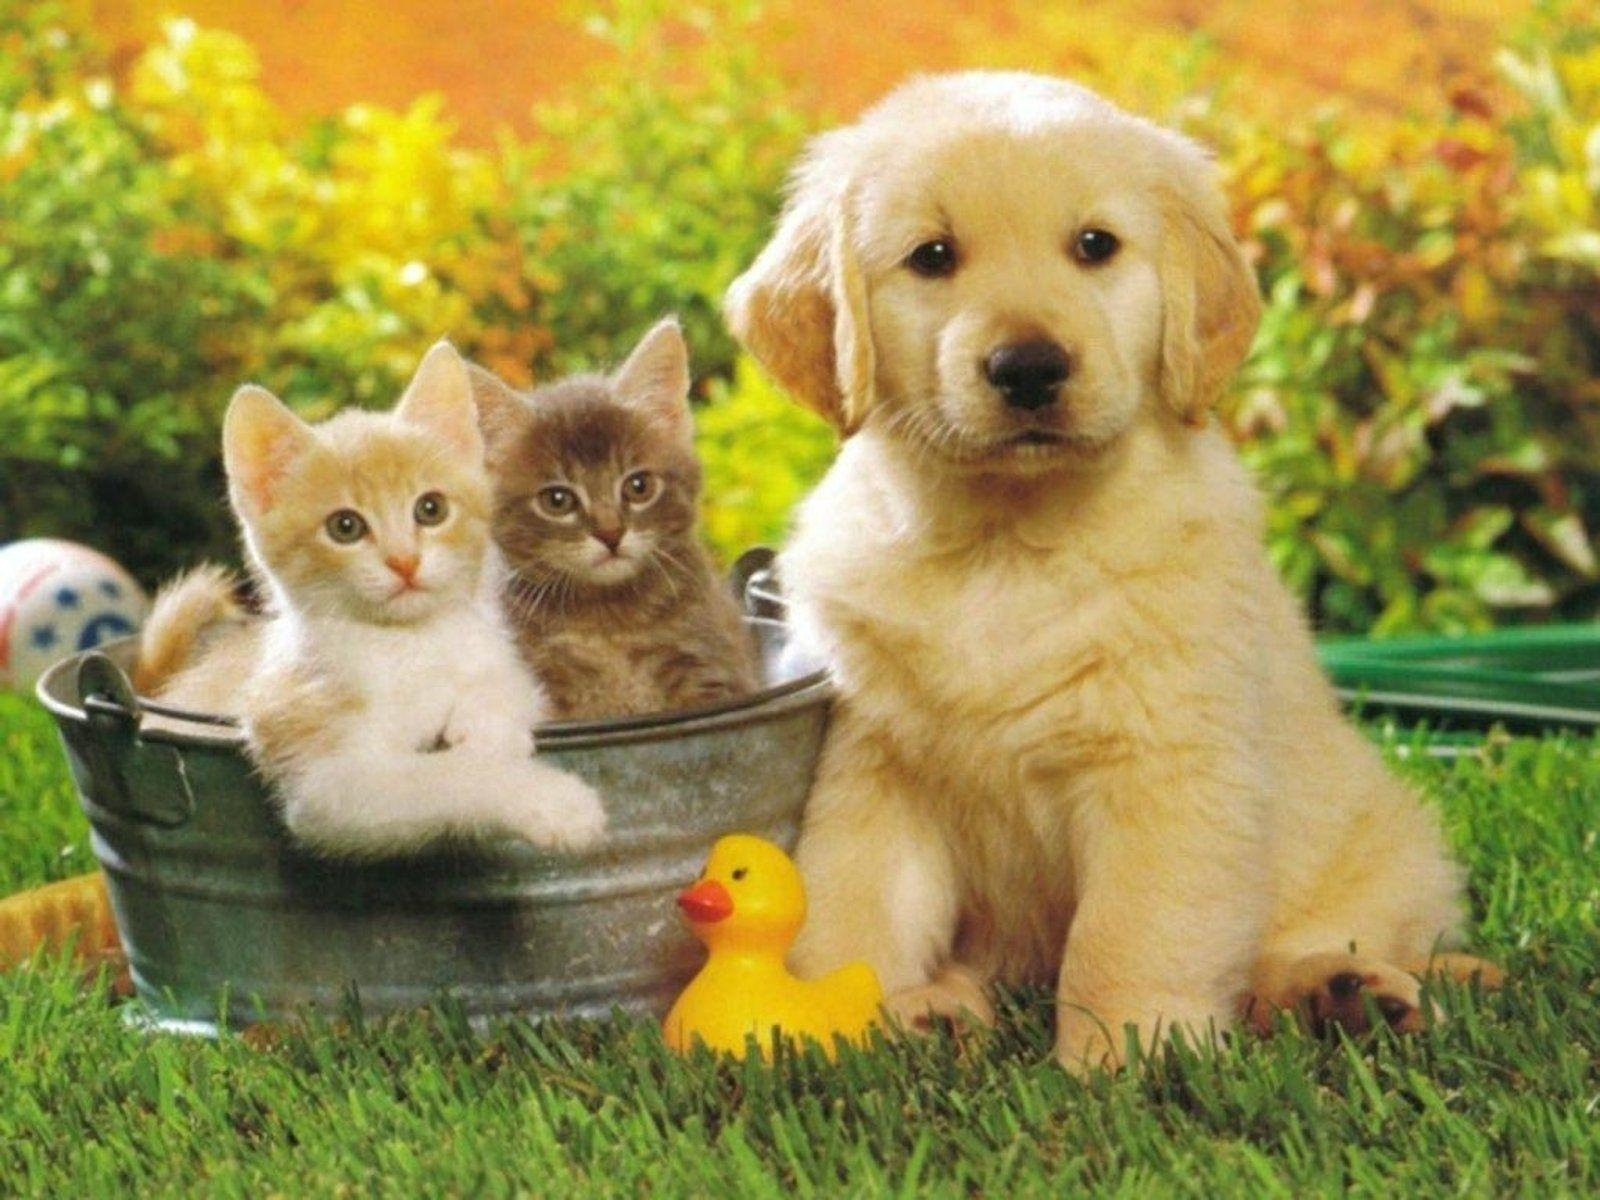 10 Latest Kittens And Puppies Wallpaper FULL HD 1080p For PC Background